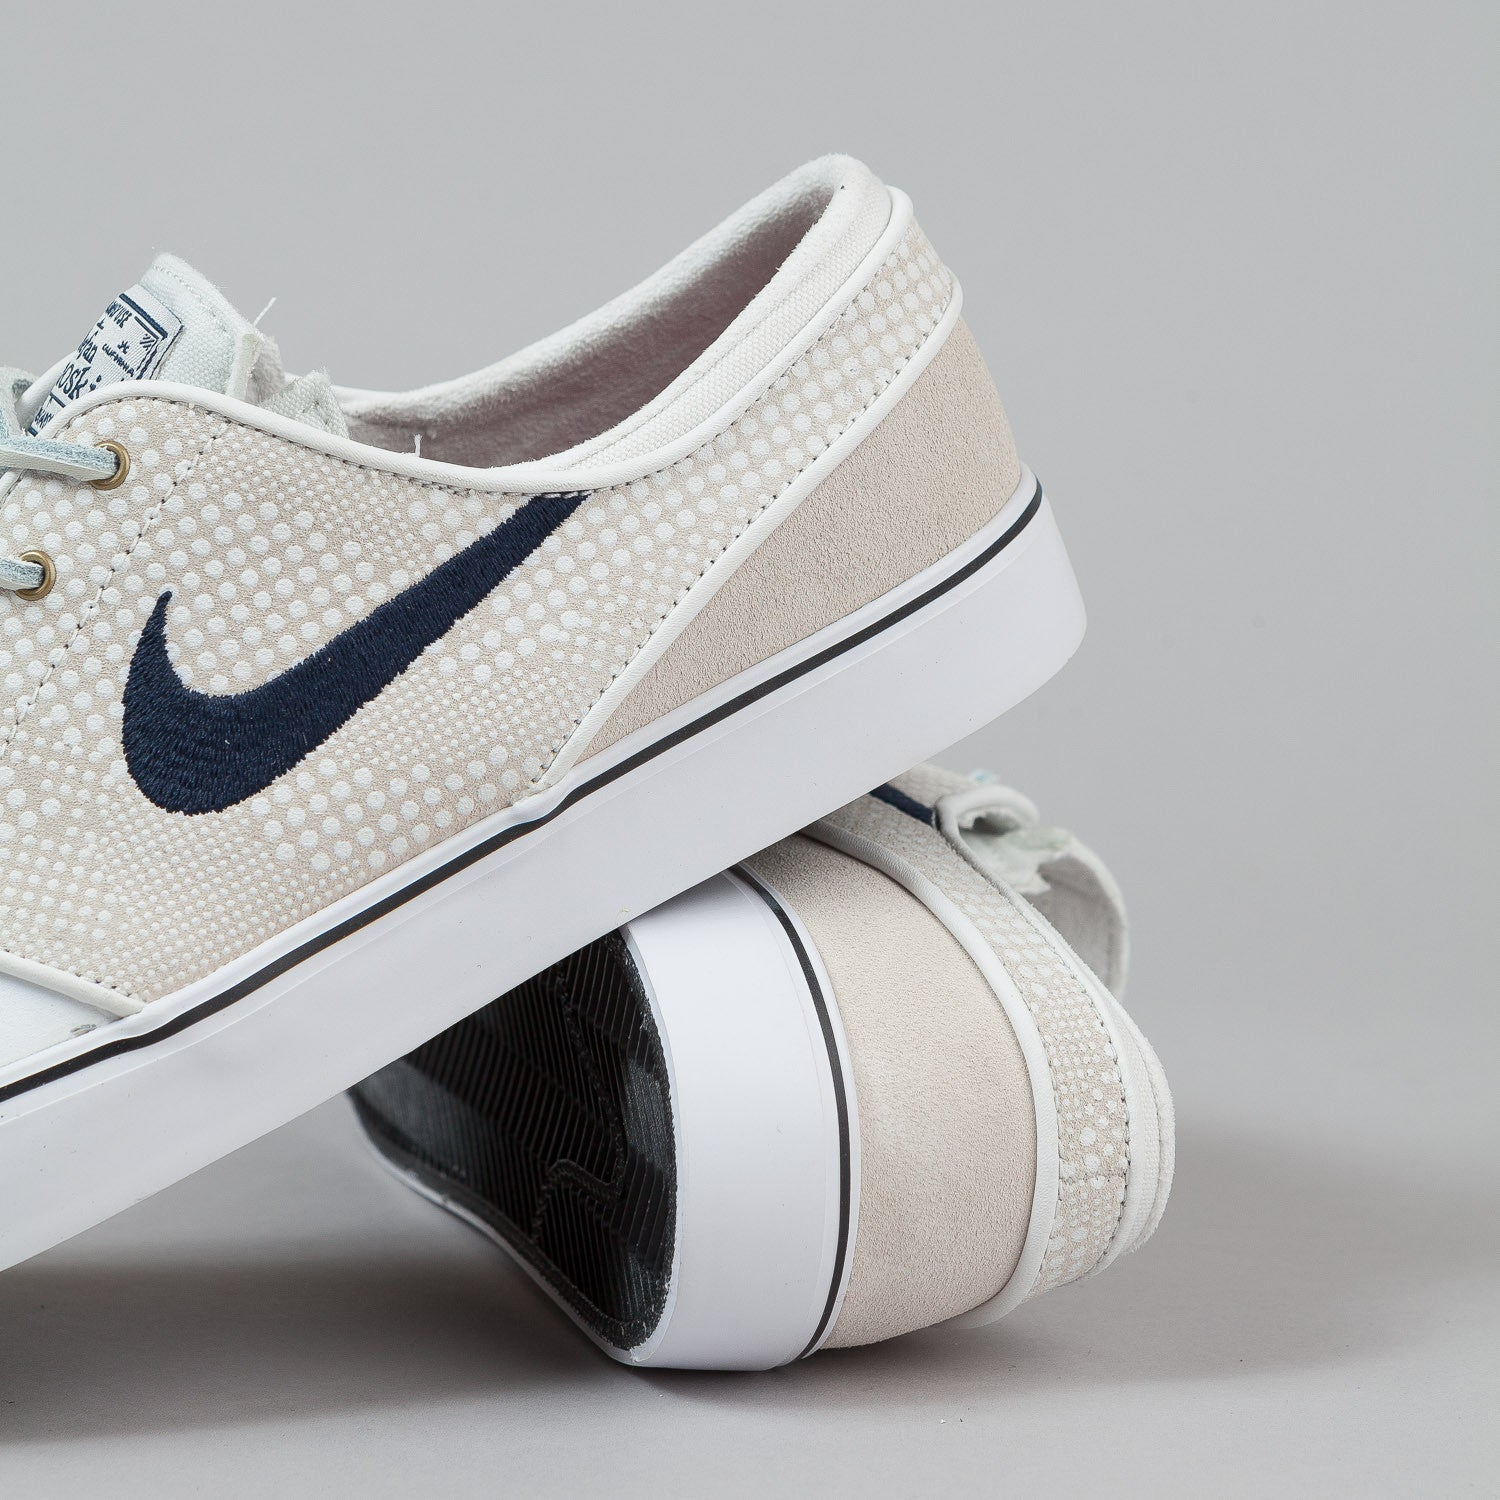 Nike SB Stefan Janoski PR SE Shoes - Summit White / Obsidian / Black / Team Red